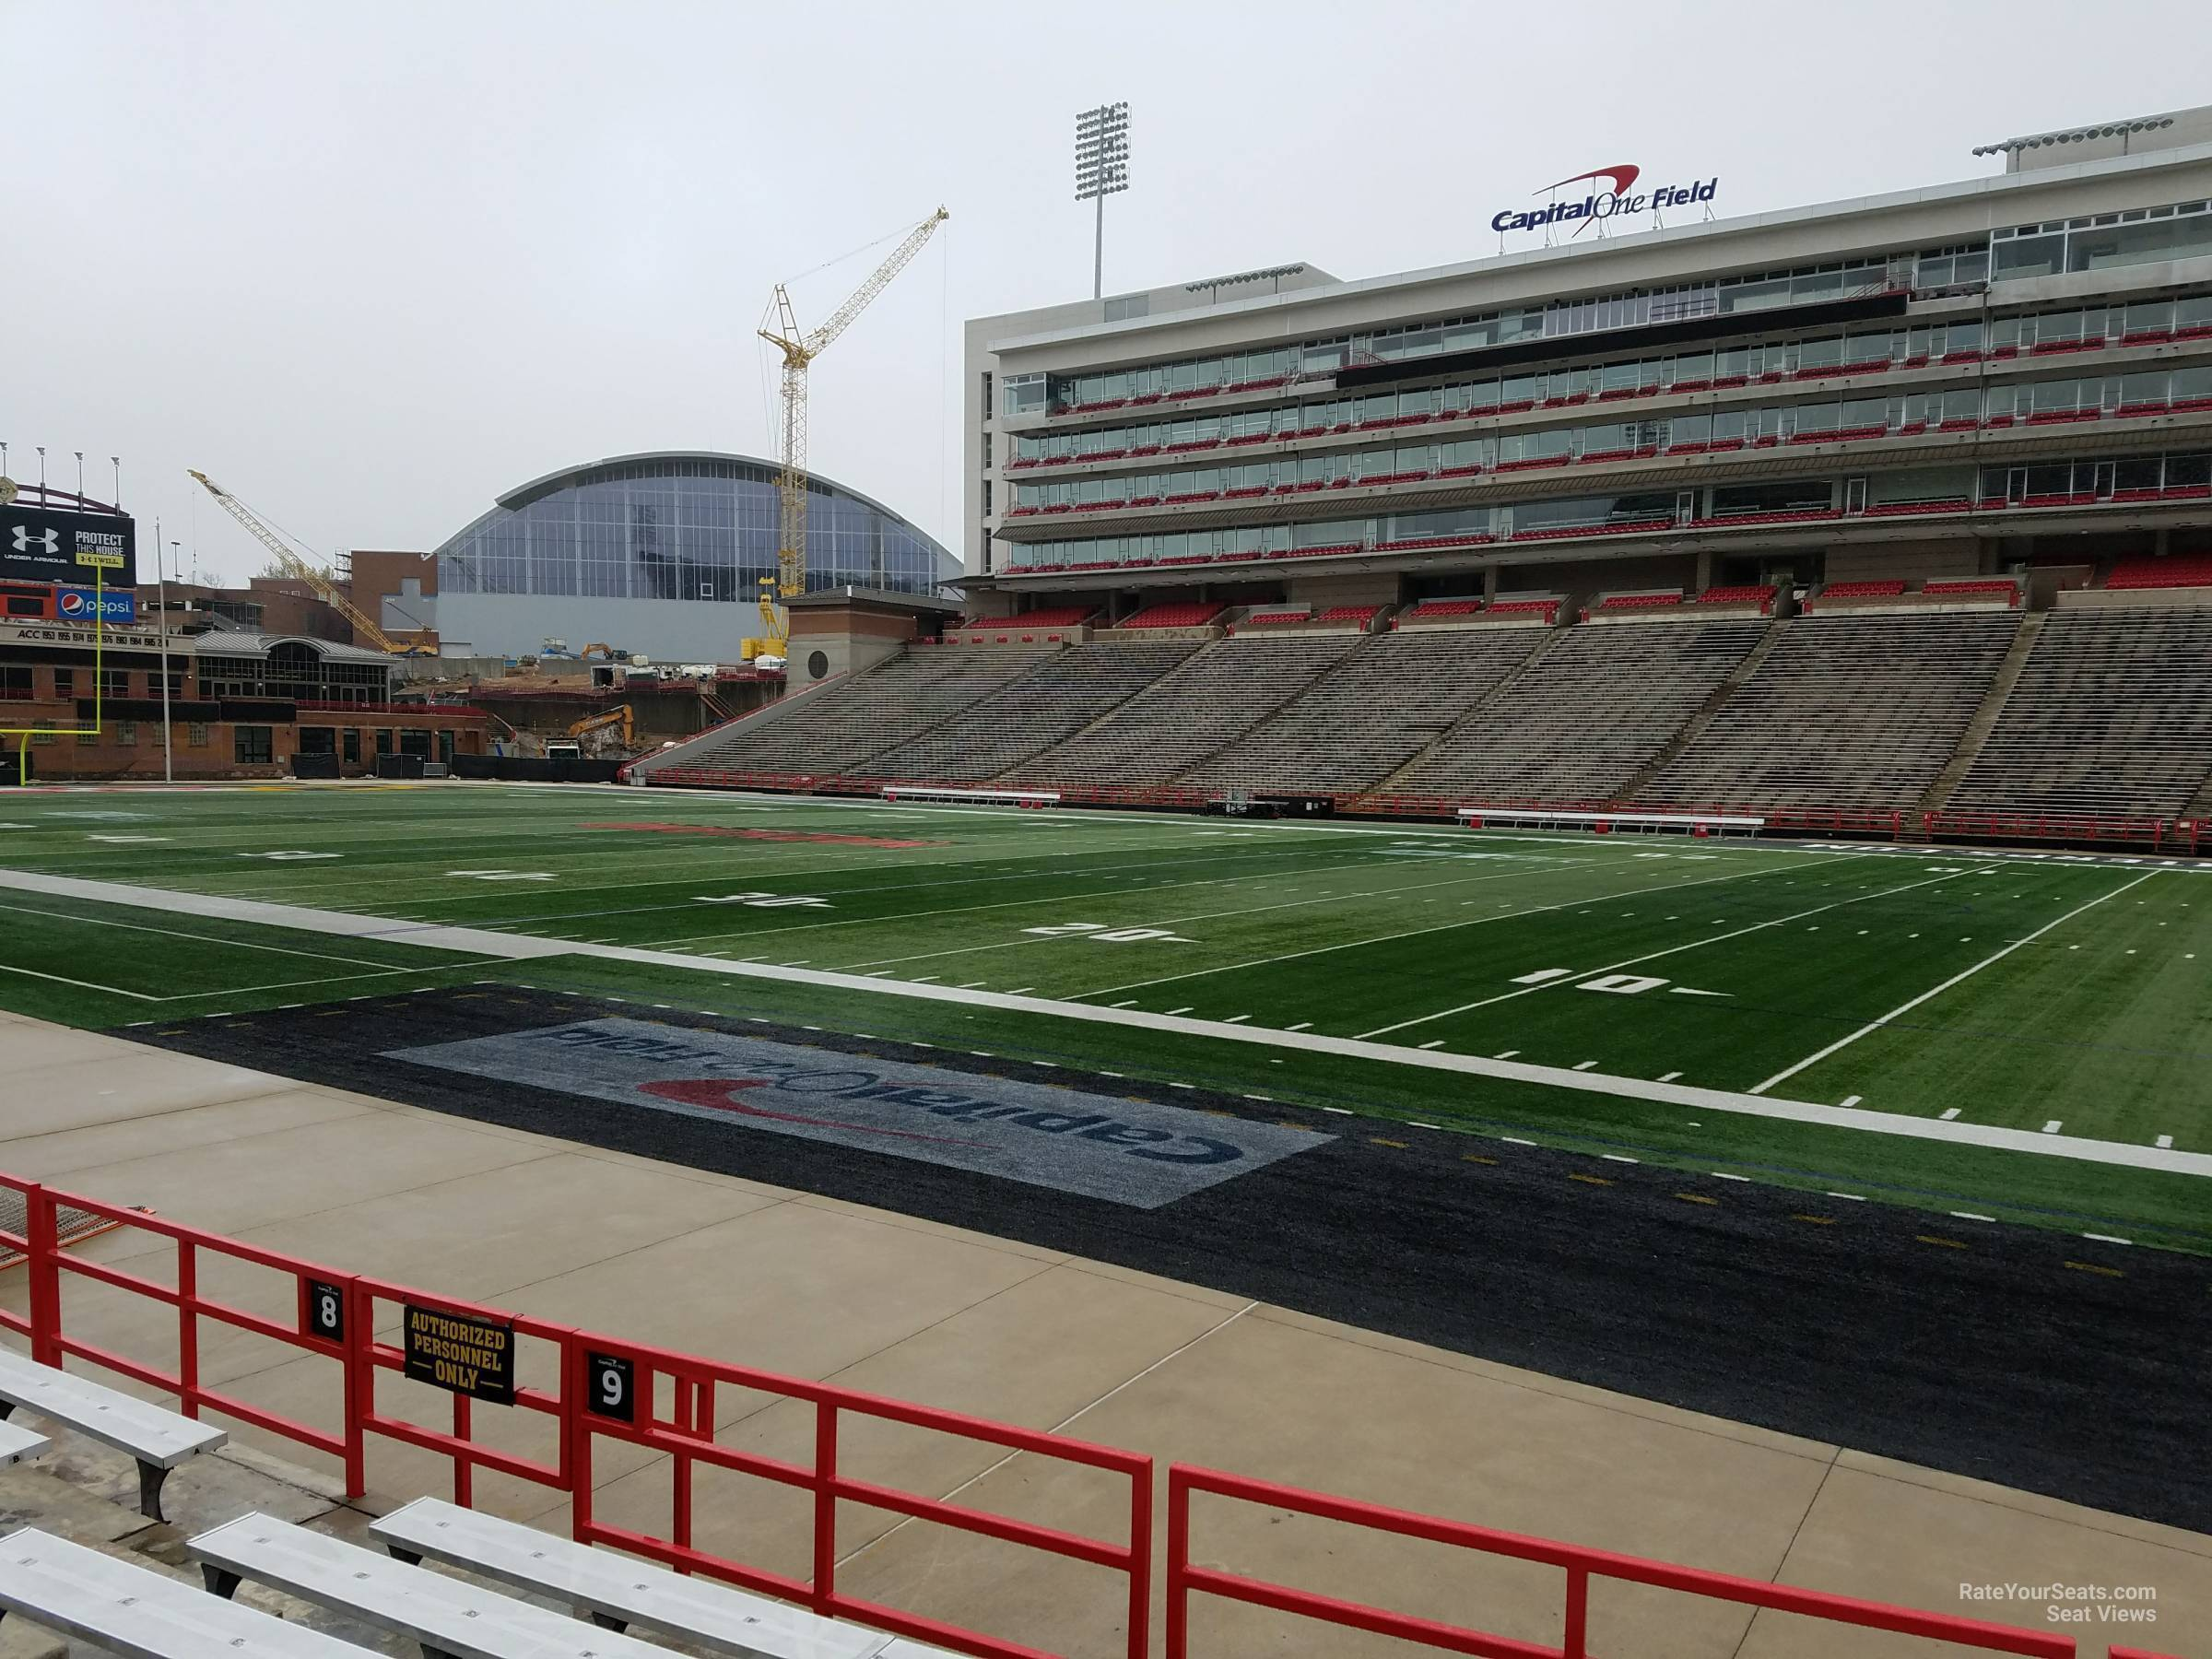 Seat View for Maryland Stadium Section 9, Row G